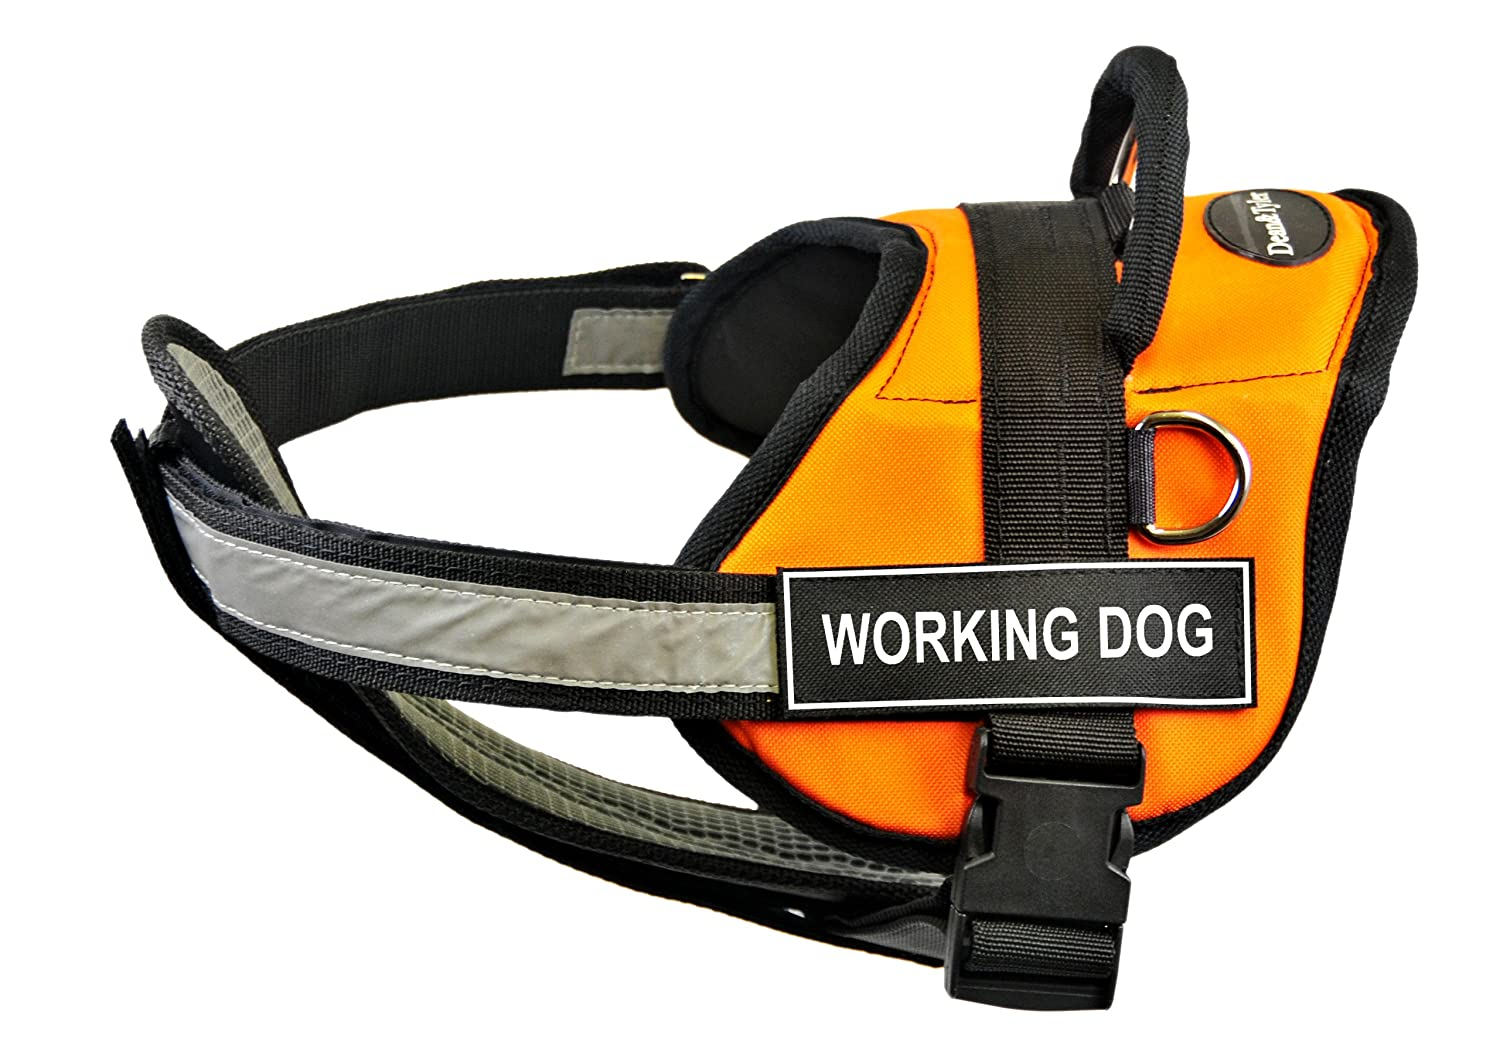 Dean & Tyler 25-Inch to 34-Inch Working Dog Harness with Padded Reflective Chest Straps, Small, orange Black